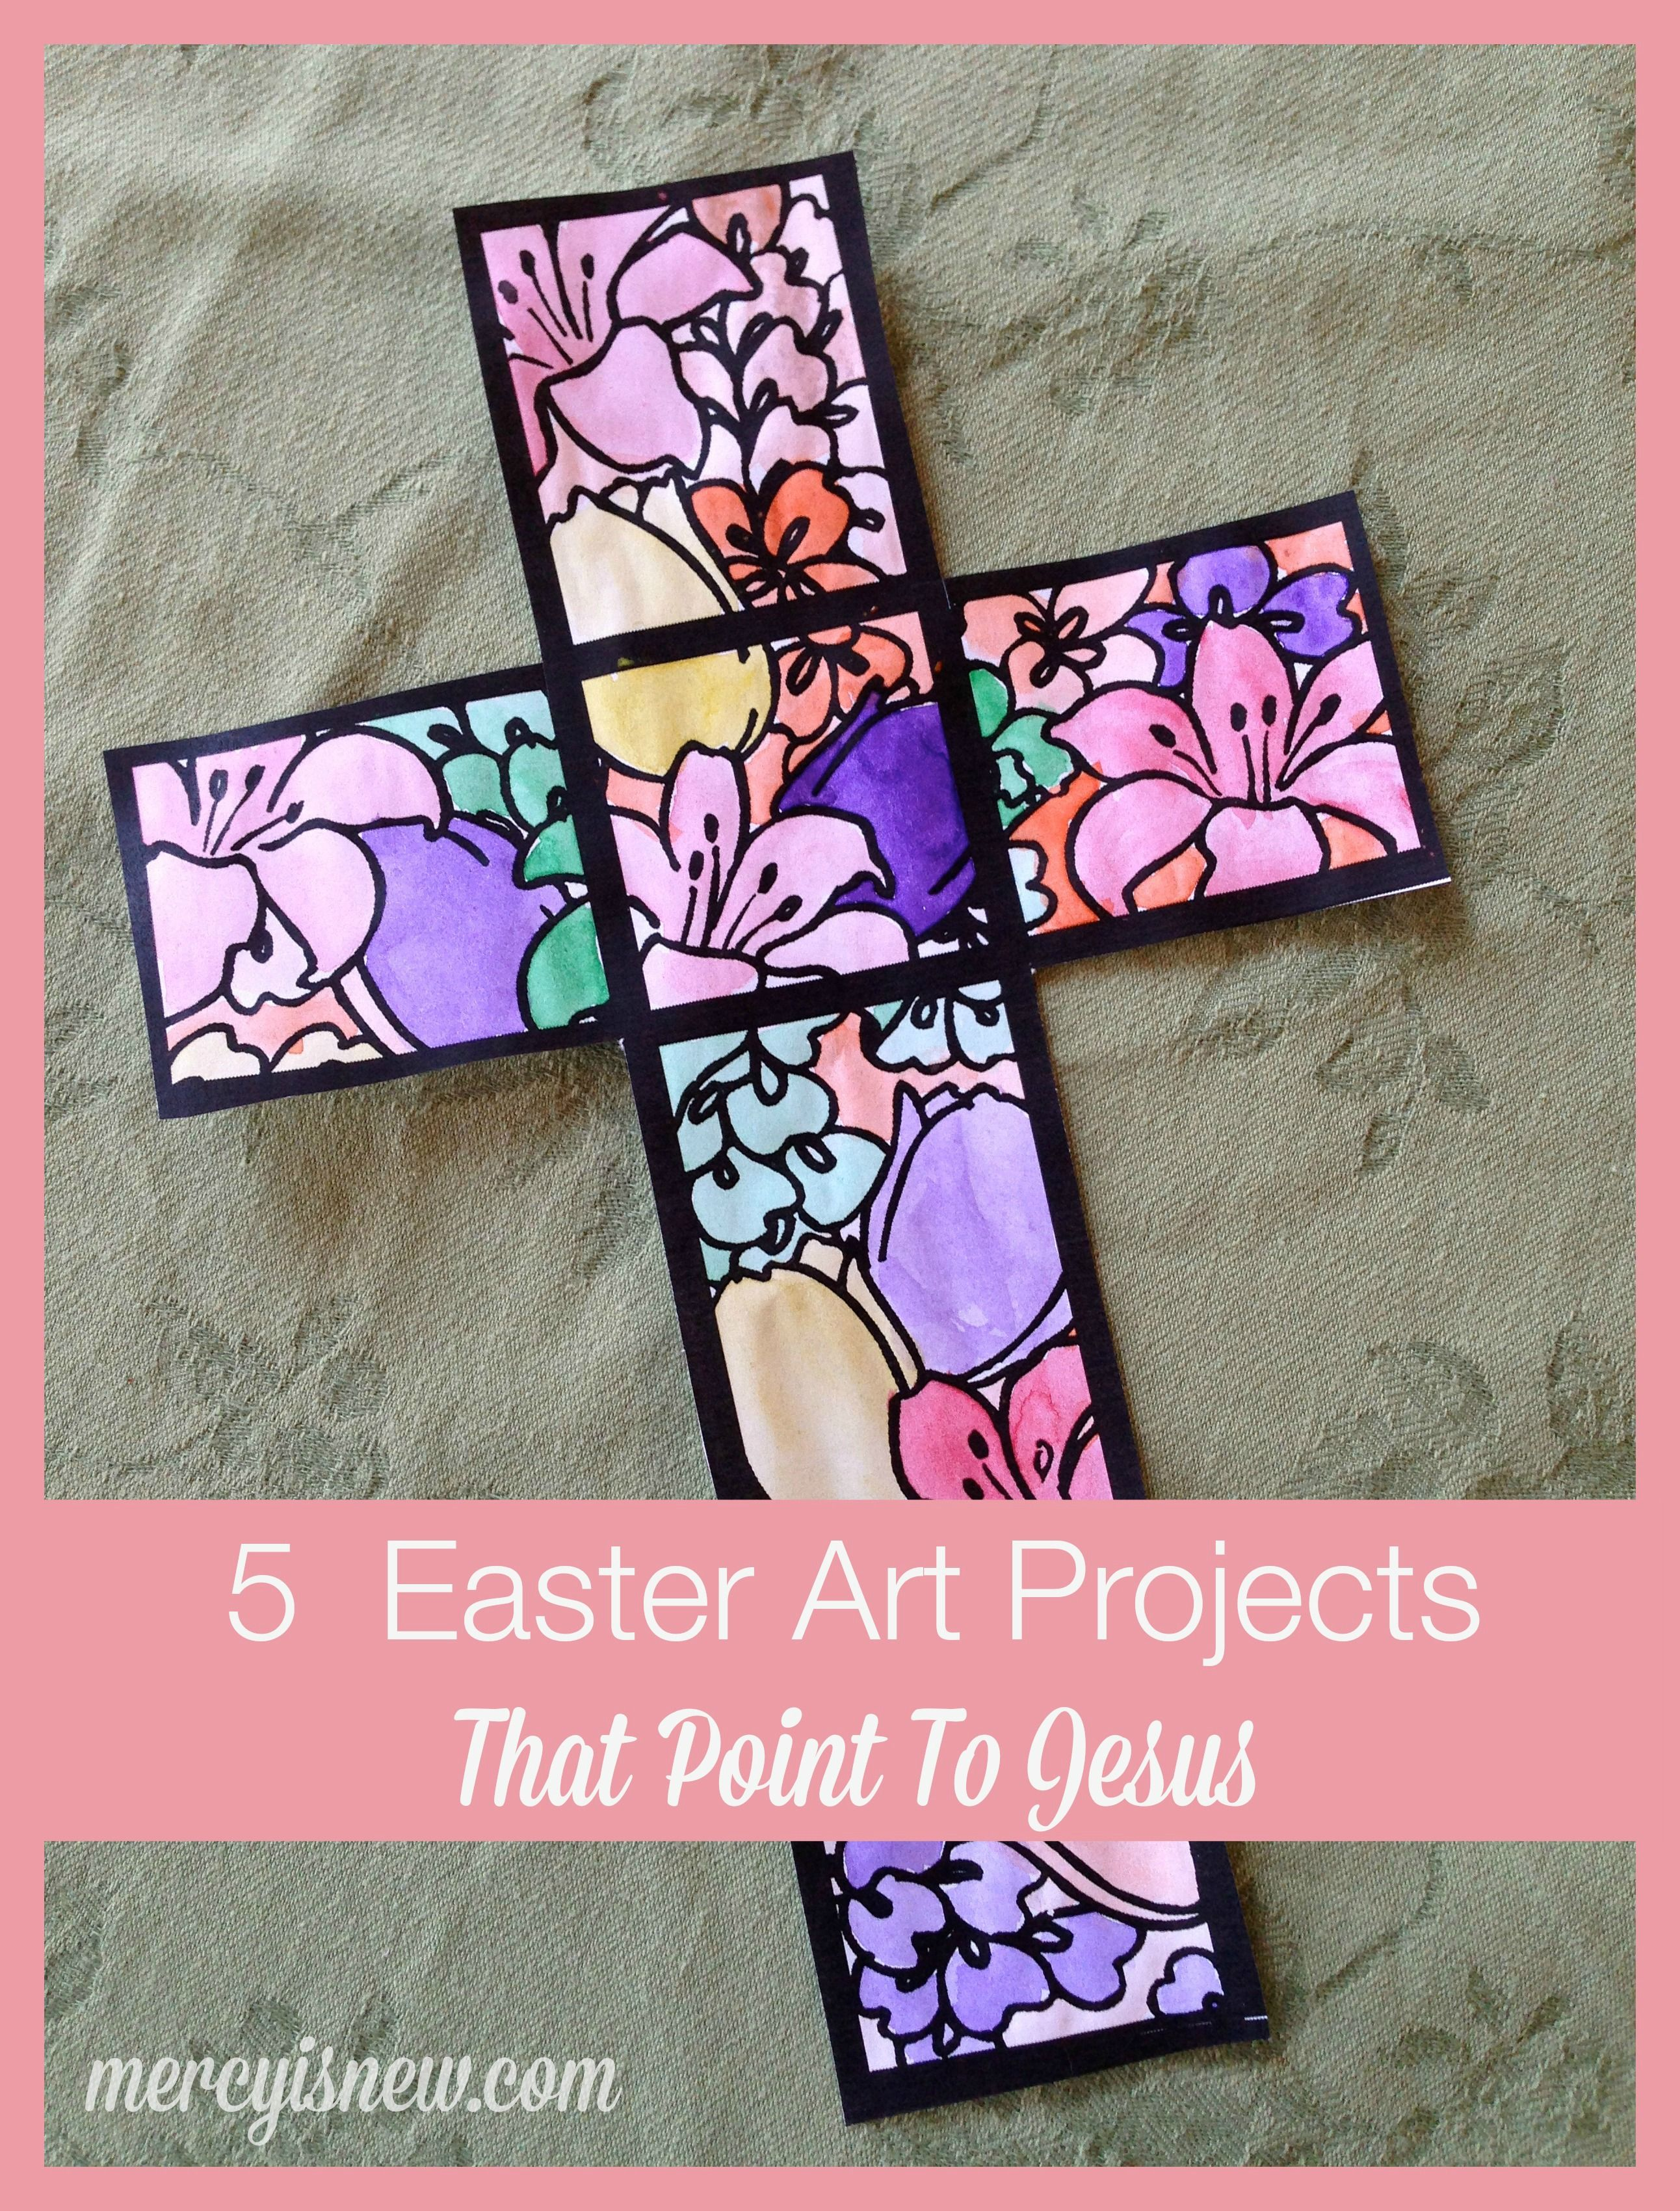 5 Easter Art Projects That Point To Jesus Mercyisnew